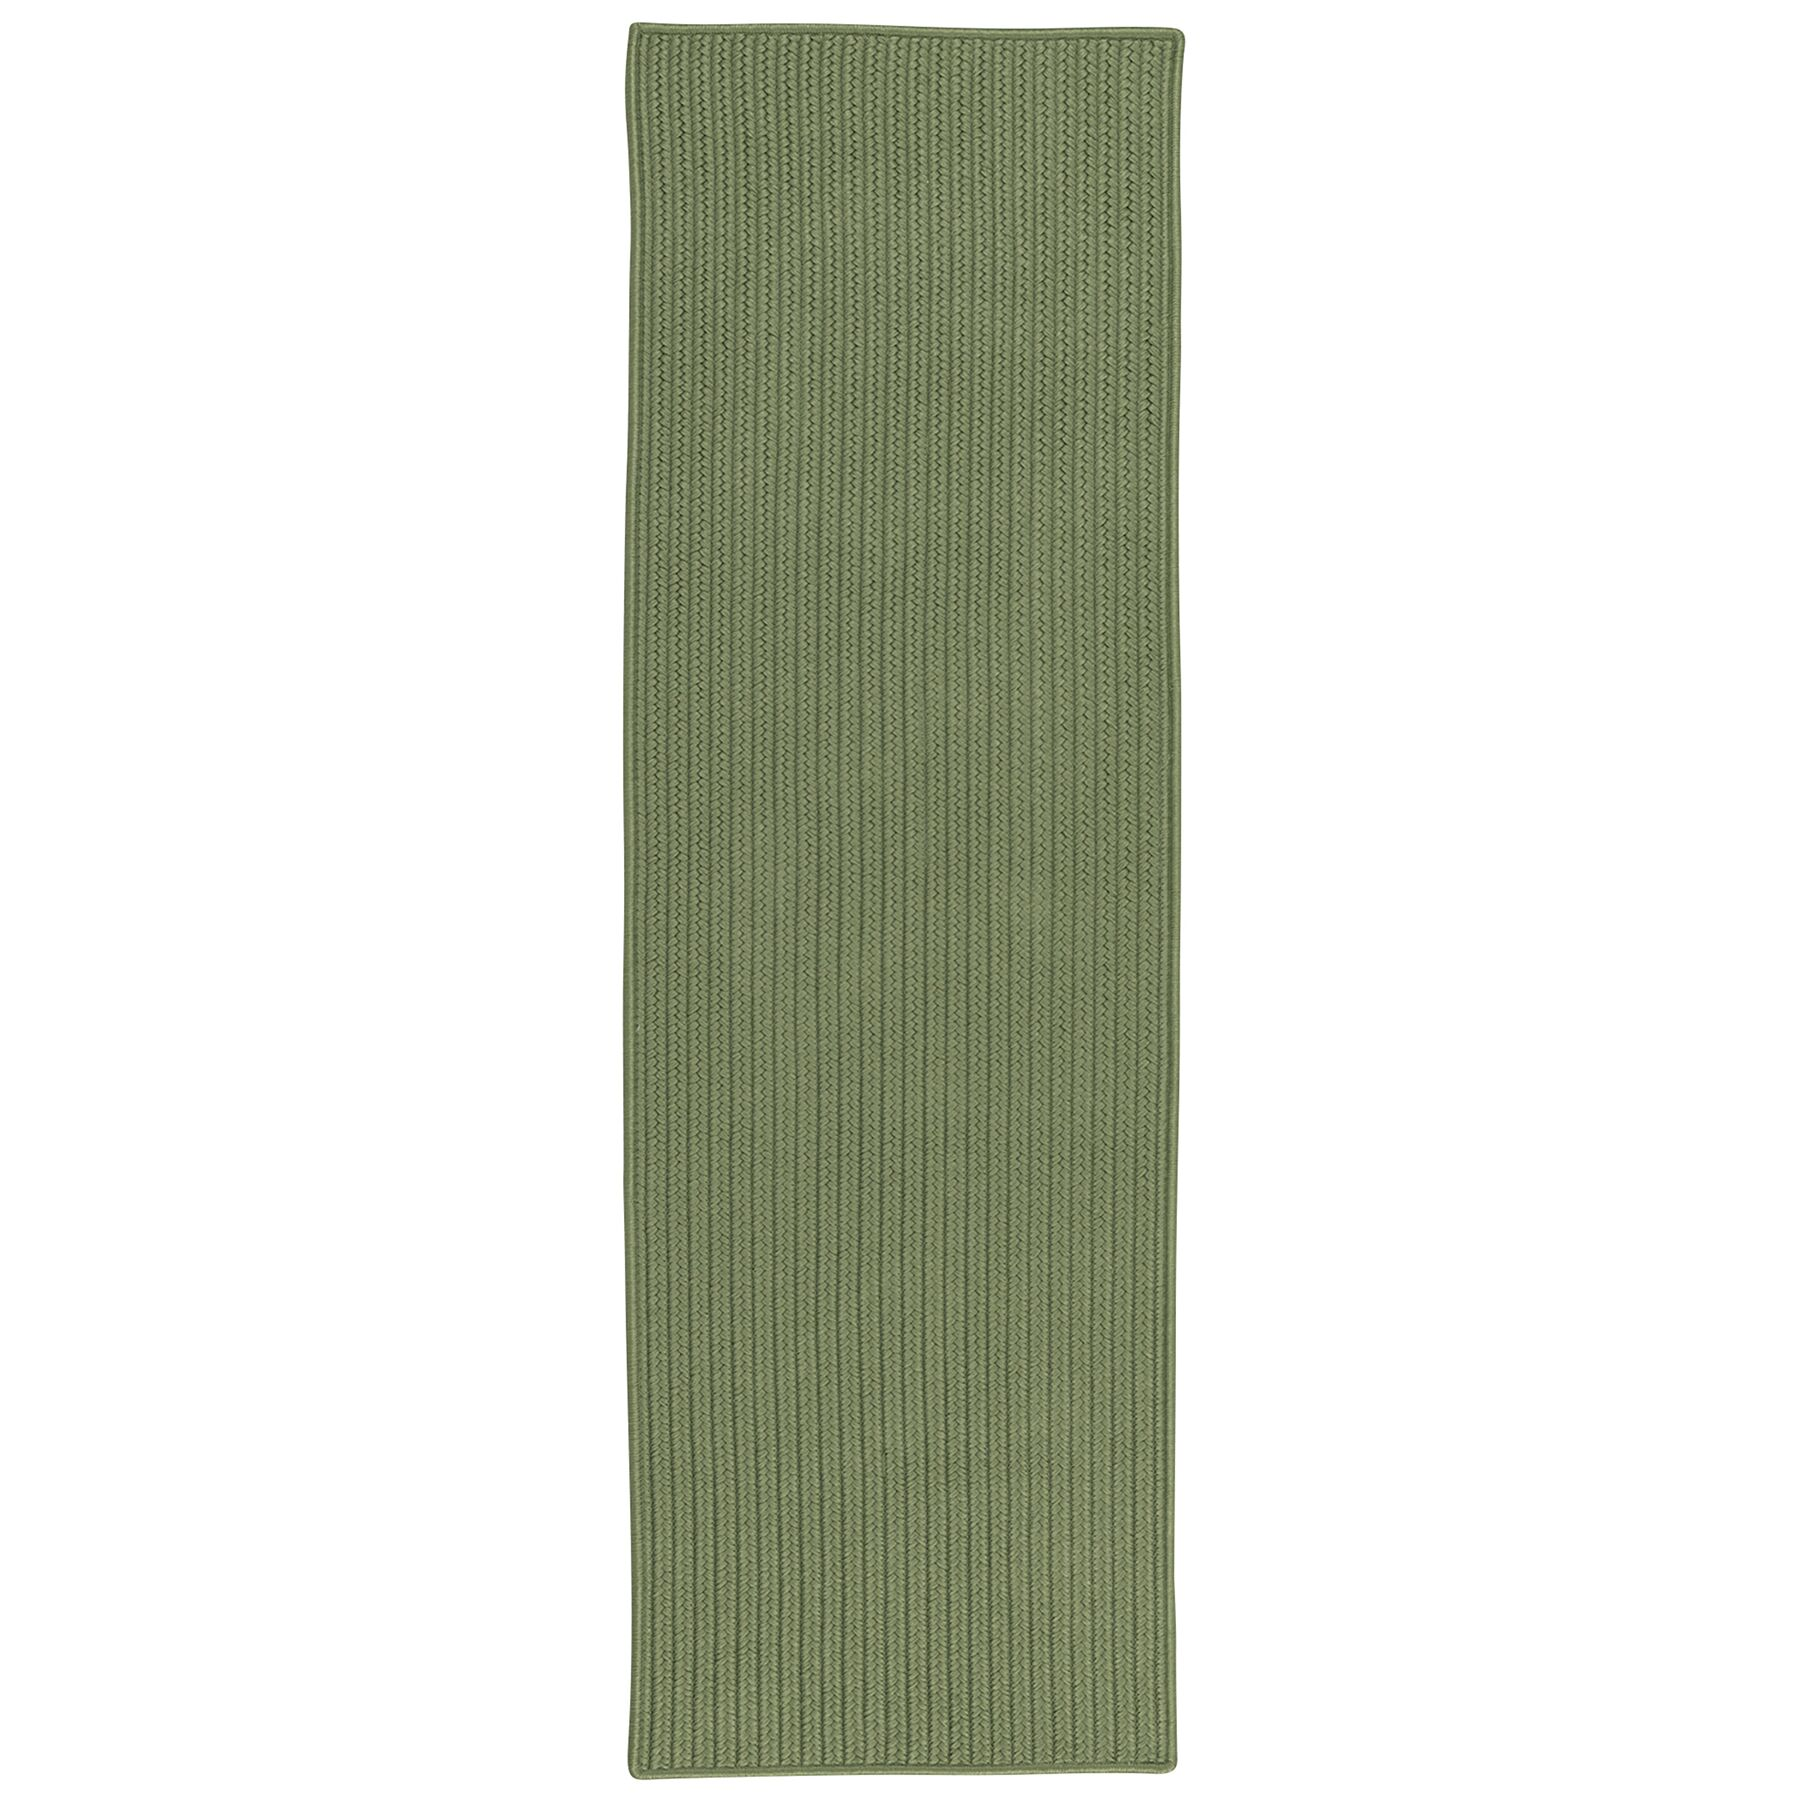 Kaleigh All-Purpose Mudroom Hand-Braided Moss Green Area Rug Rug Size: Runner 2' x 8'